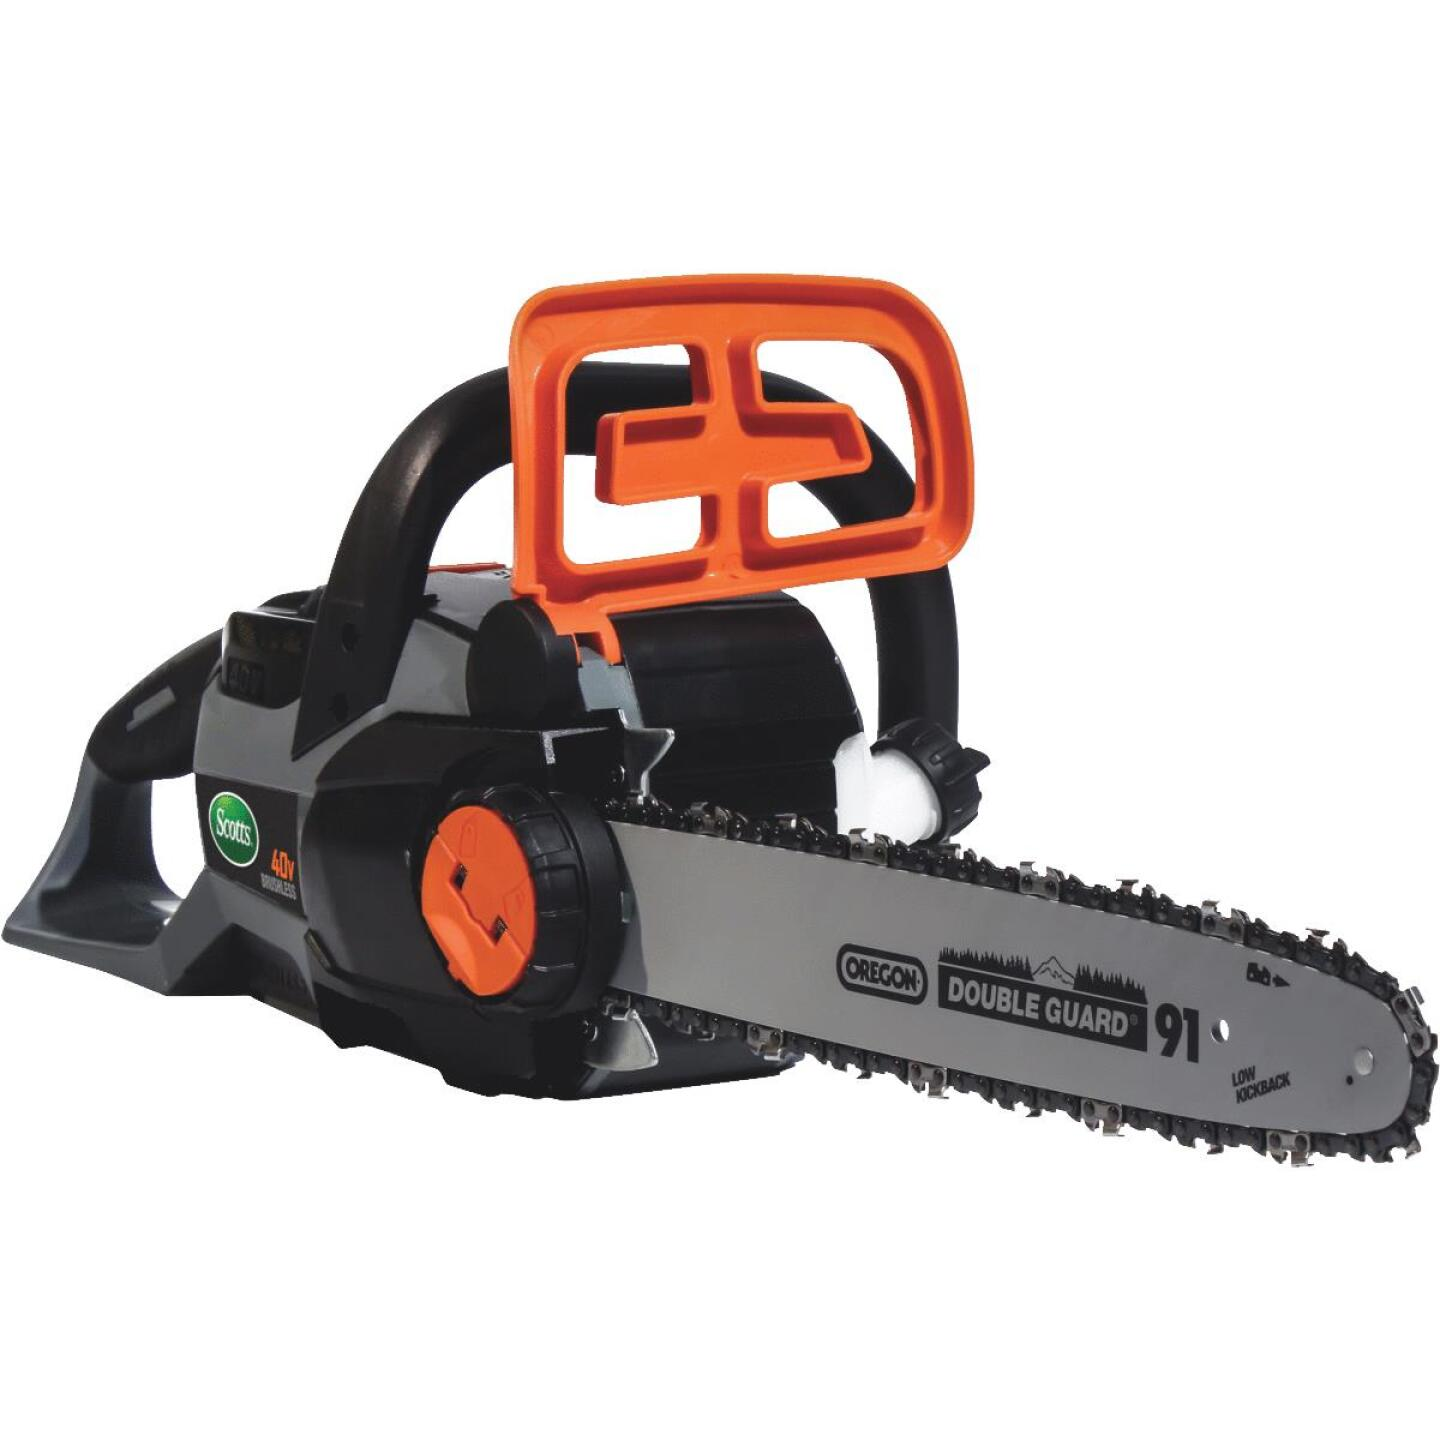 Scotts 14 In. 40 Volt Lithium Ion Cordless Chainsaw Image 1